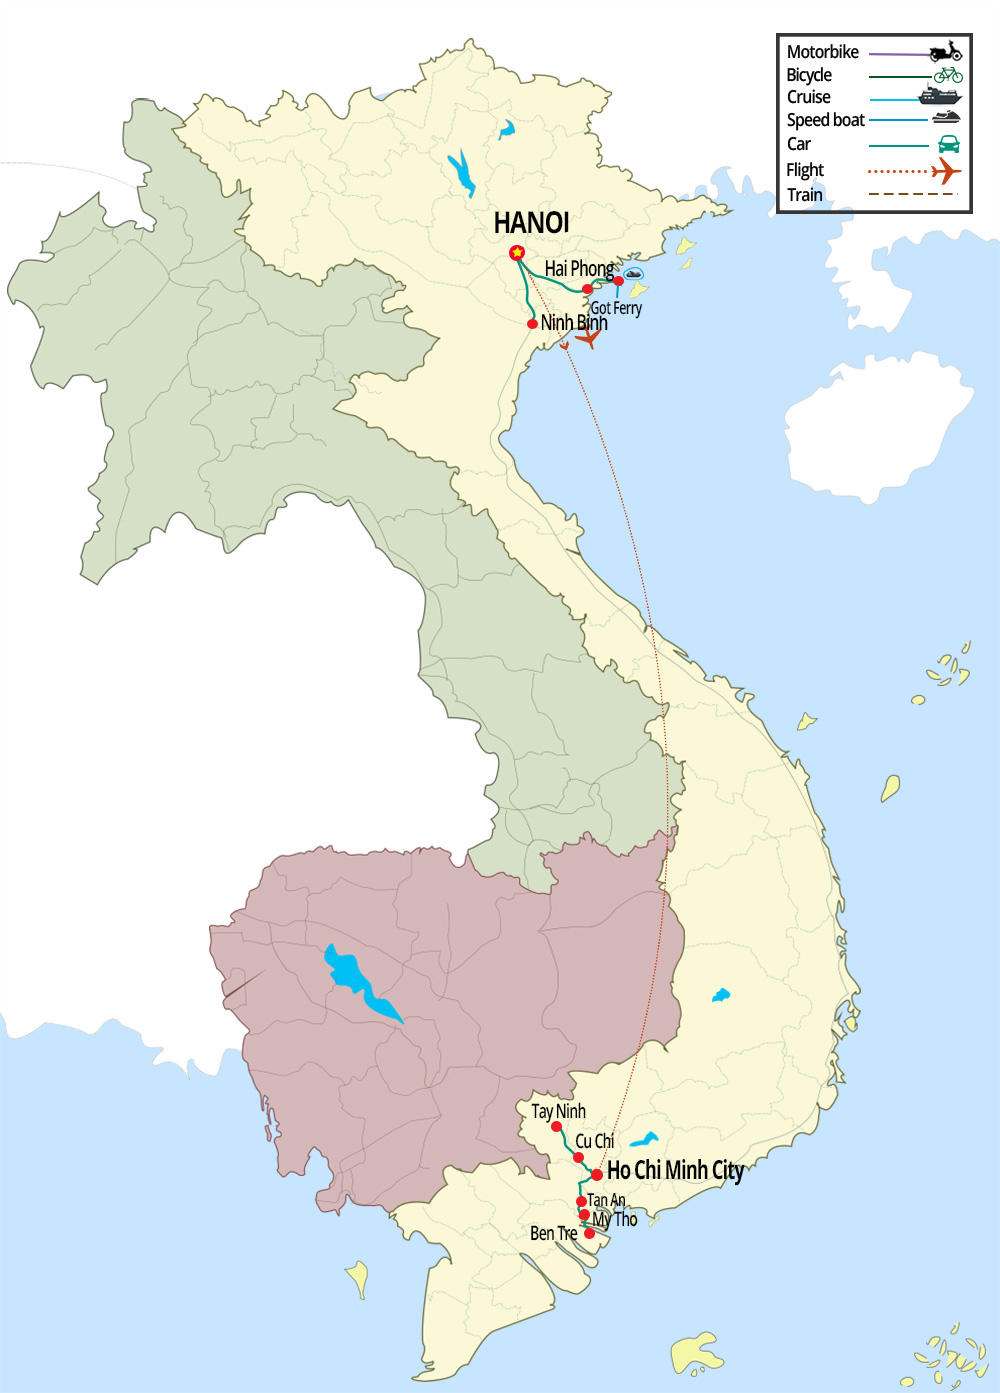 vietnam-highlights-in-the-north-and-south-vietnam-authentic-tour.jpg